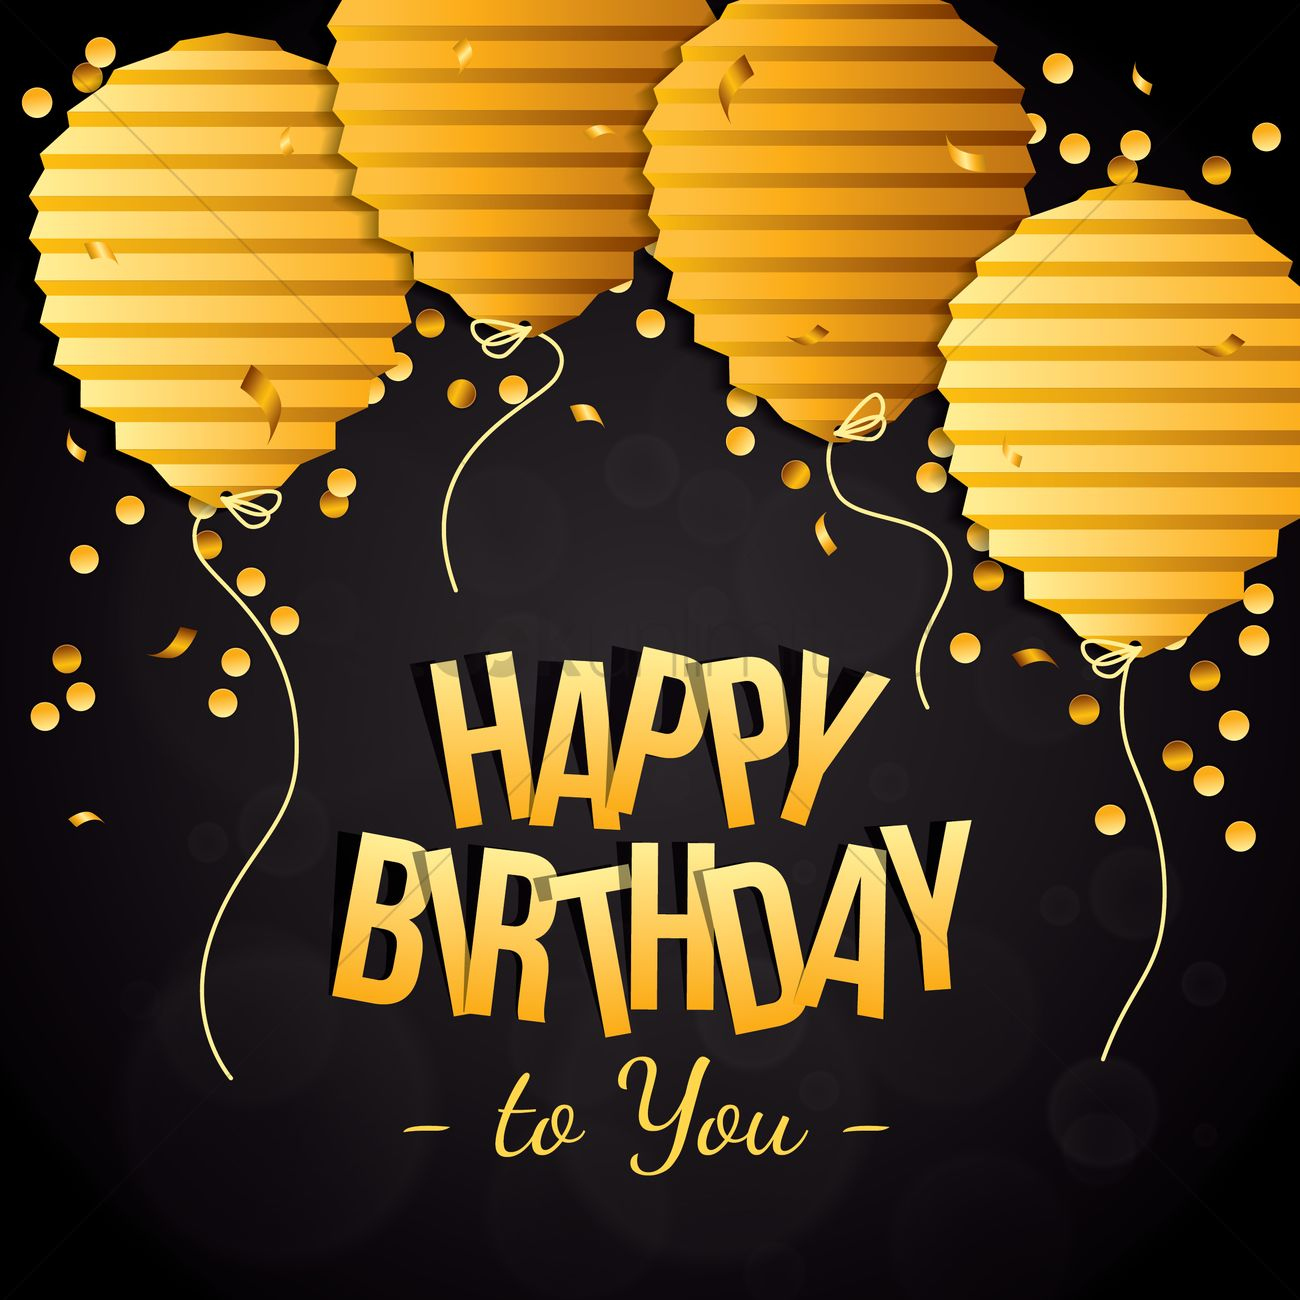 Happy Birthday With Classy Concept Vector Image 1934695